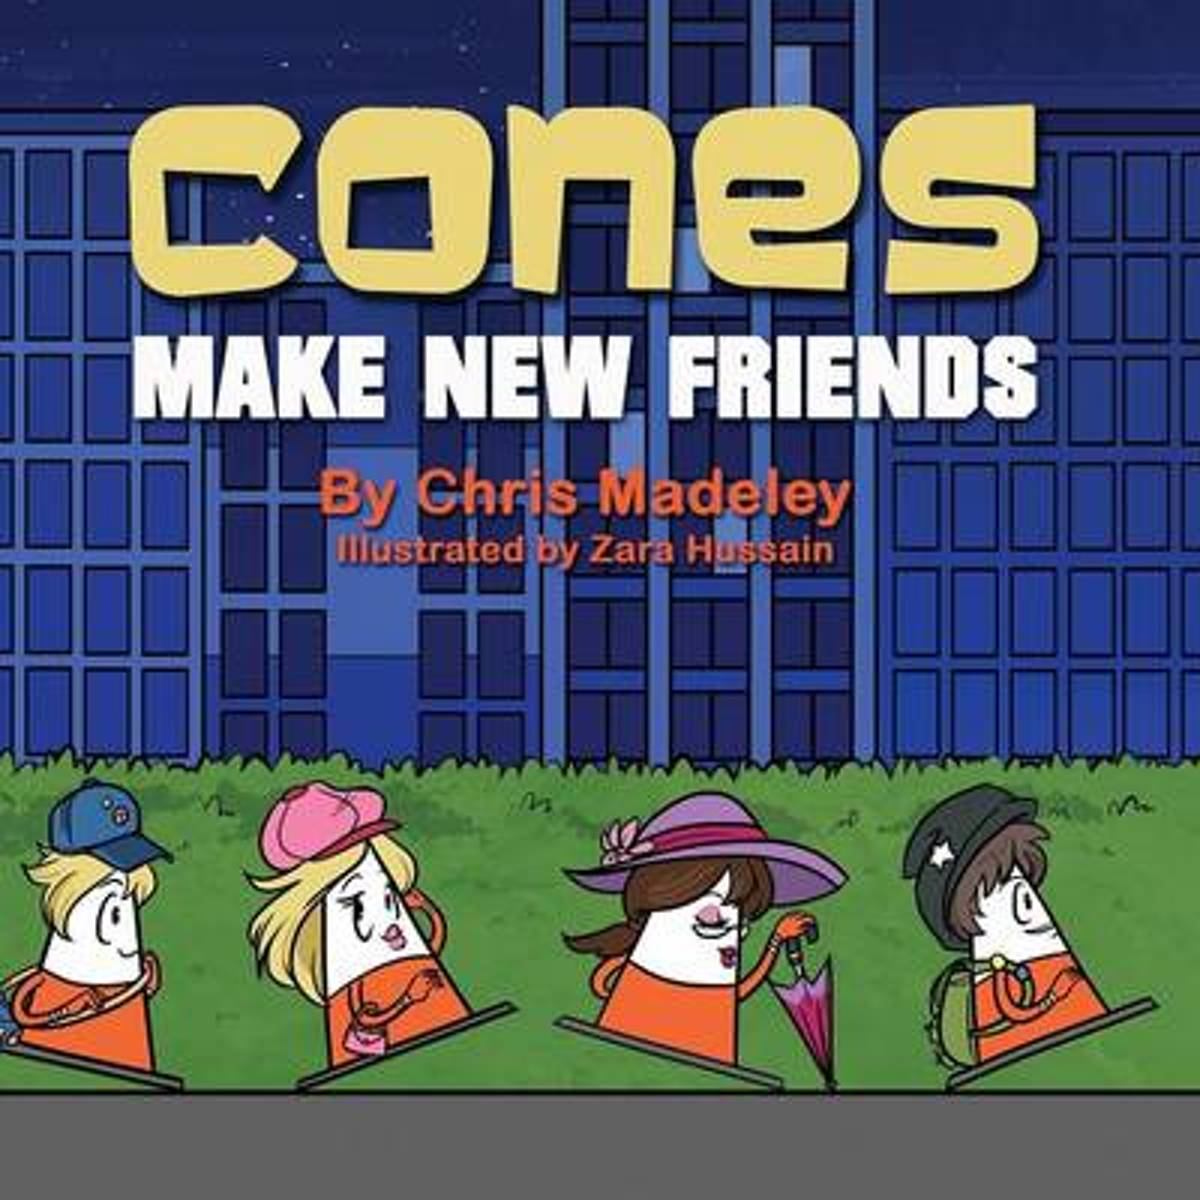 Cones Make New Friends image